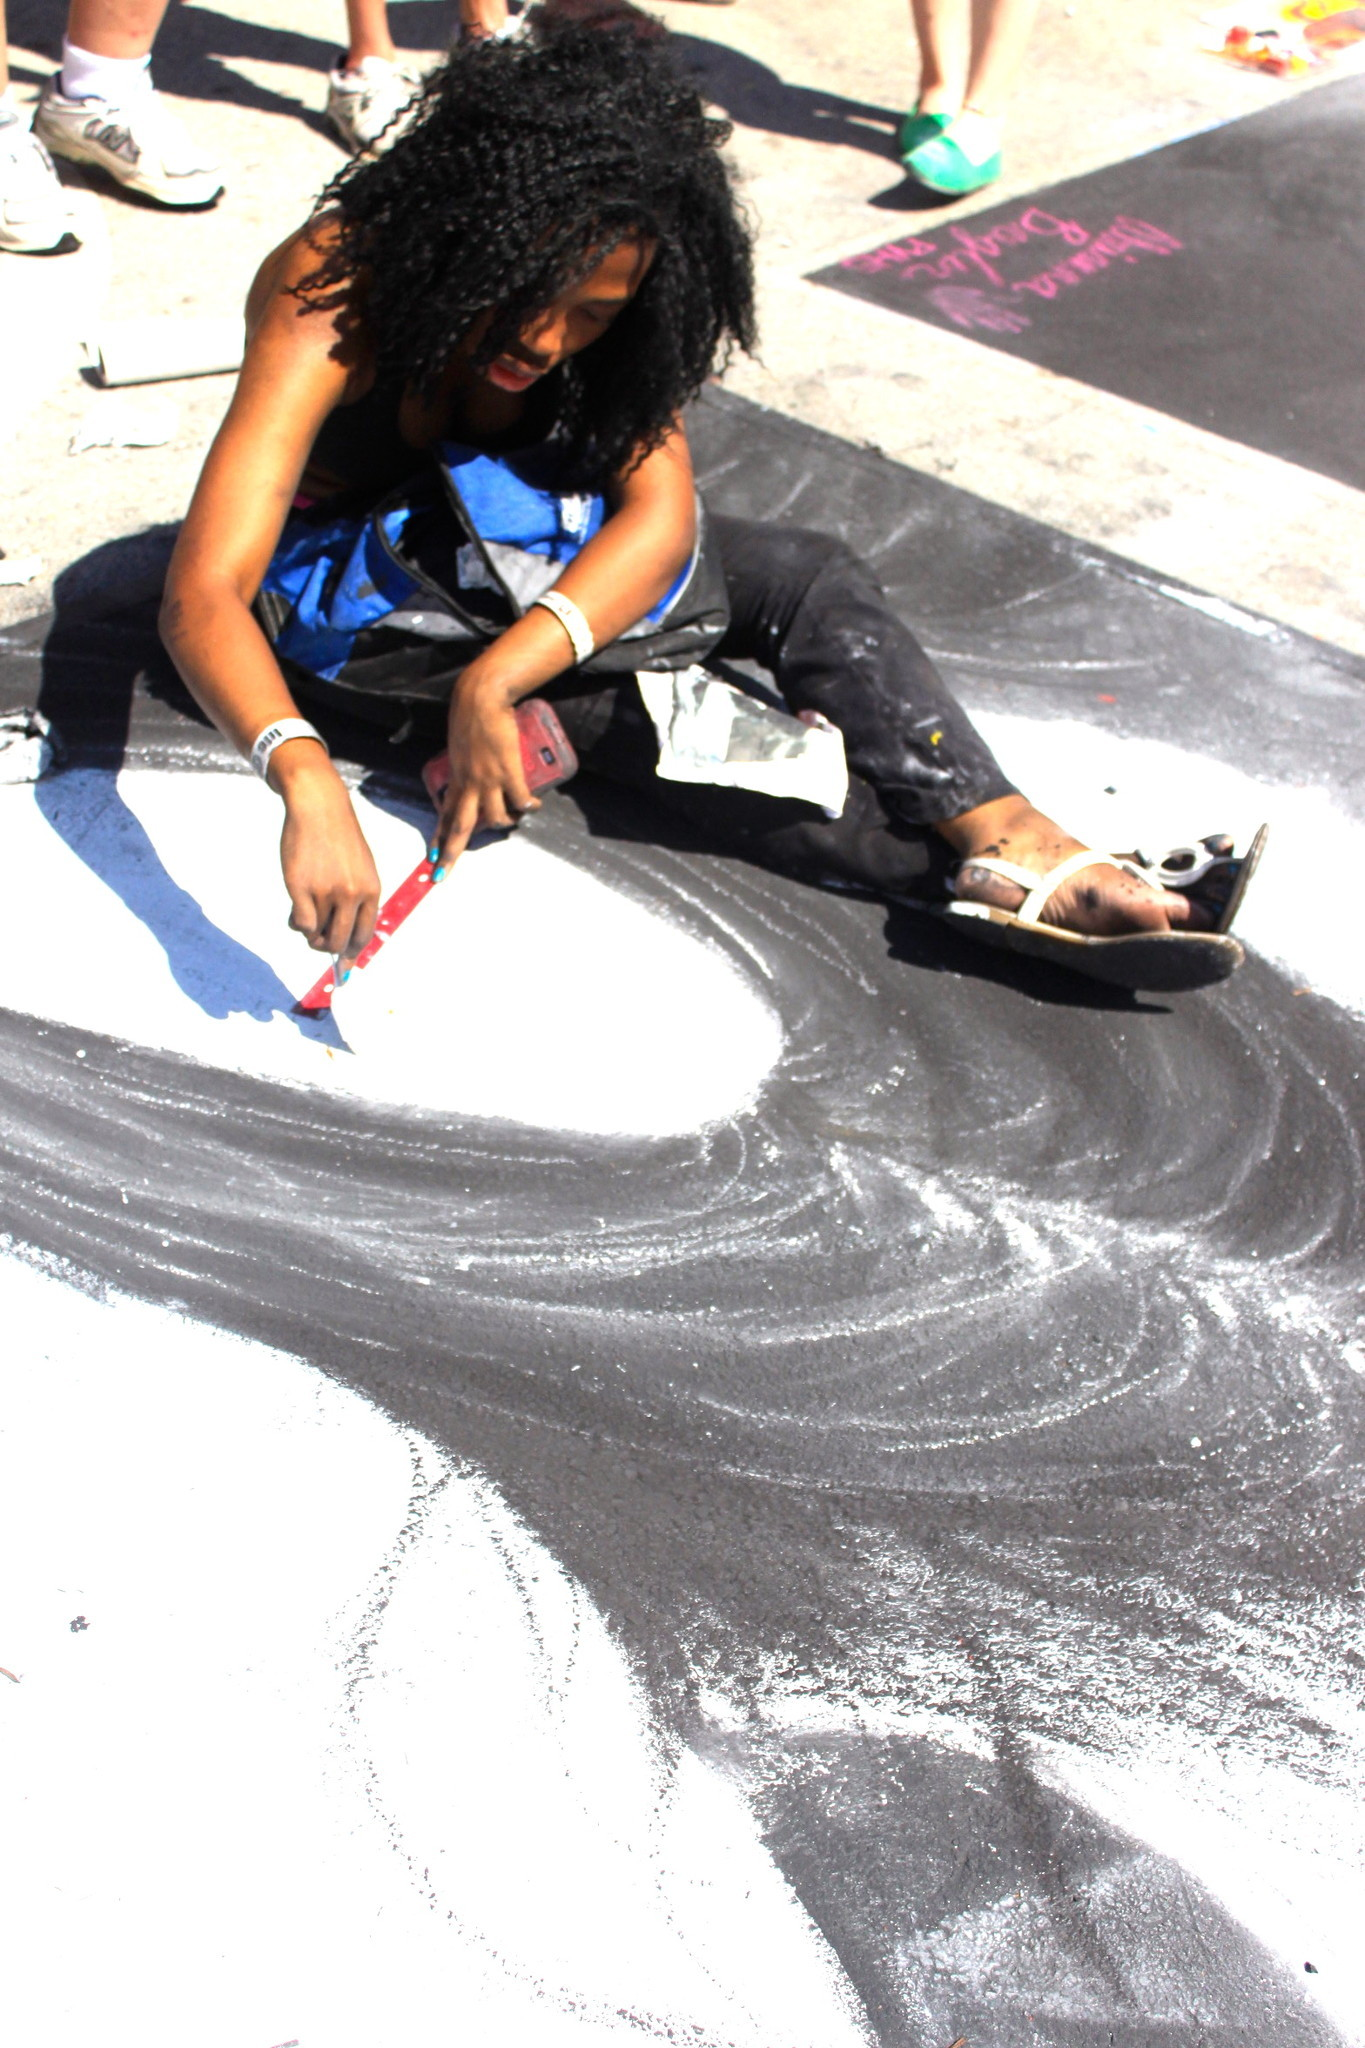 Lake Worth Street Painting Festival - Lake Worth Street Painting Festival Pictures-